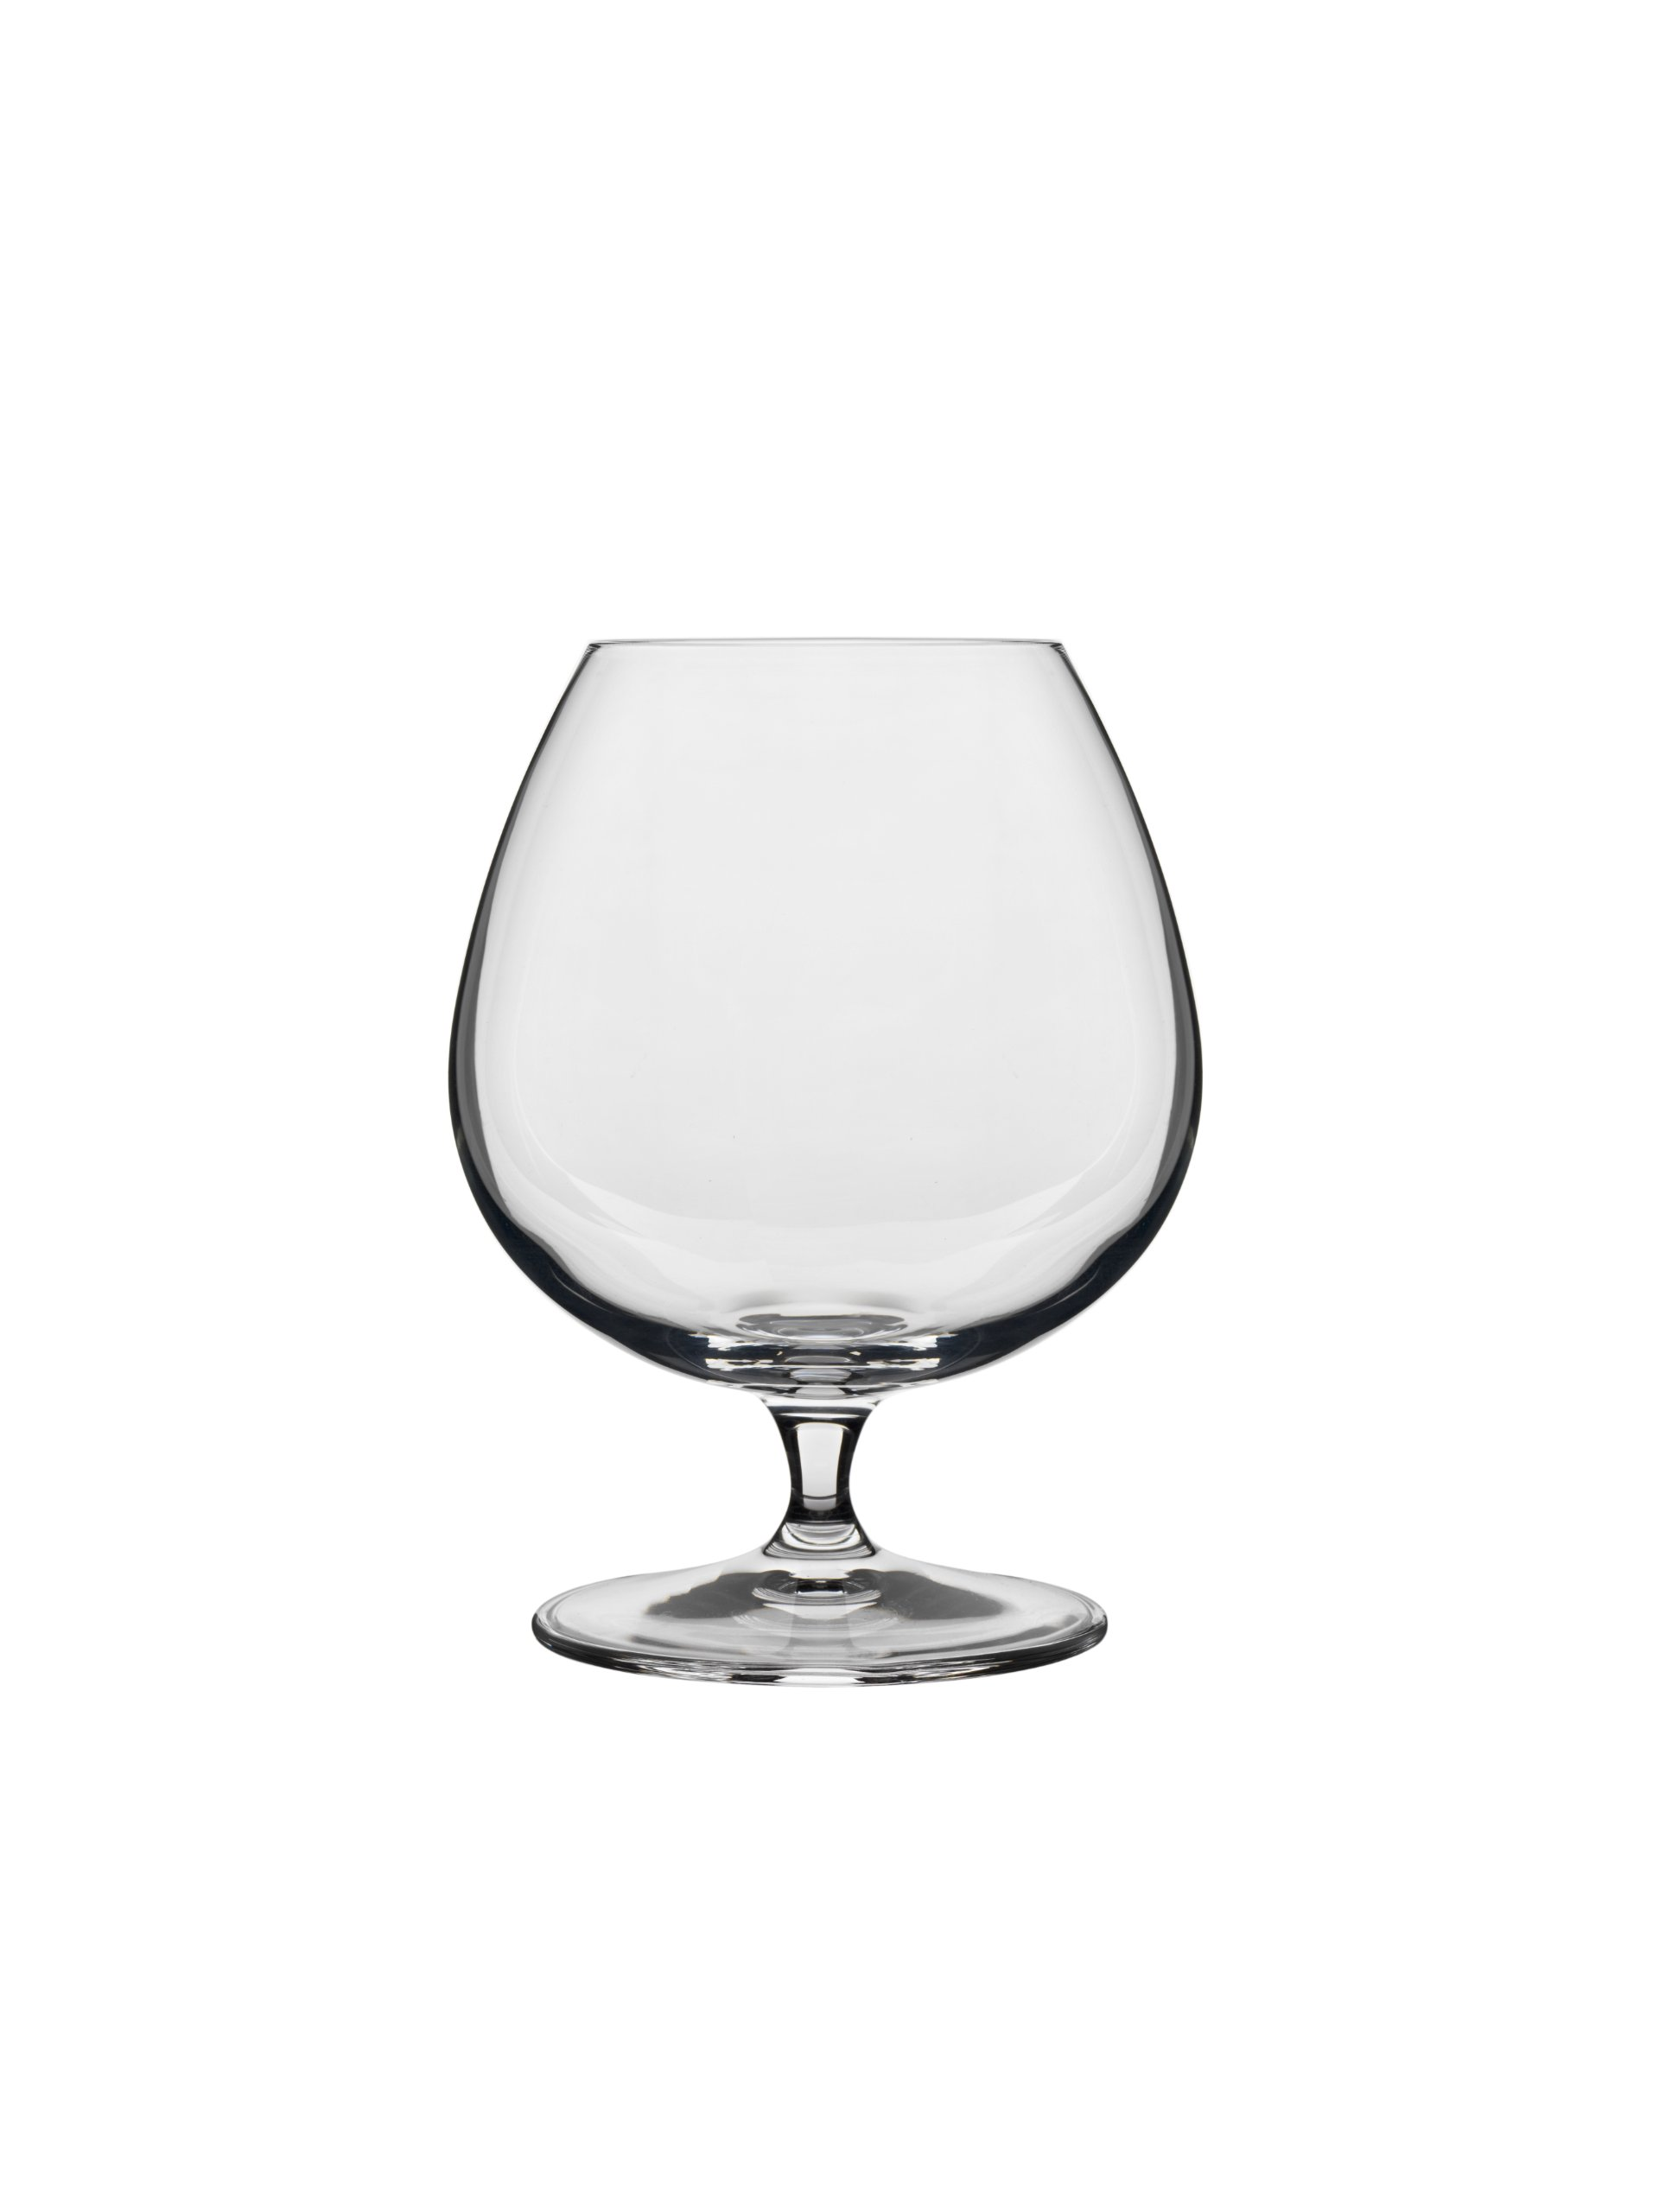 Luigi Bormioli 10564/02 Crescendo 15-1/2-Ounce Brandy Snifter,Clear , Set of 4 by Luigi Bormioli